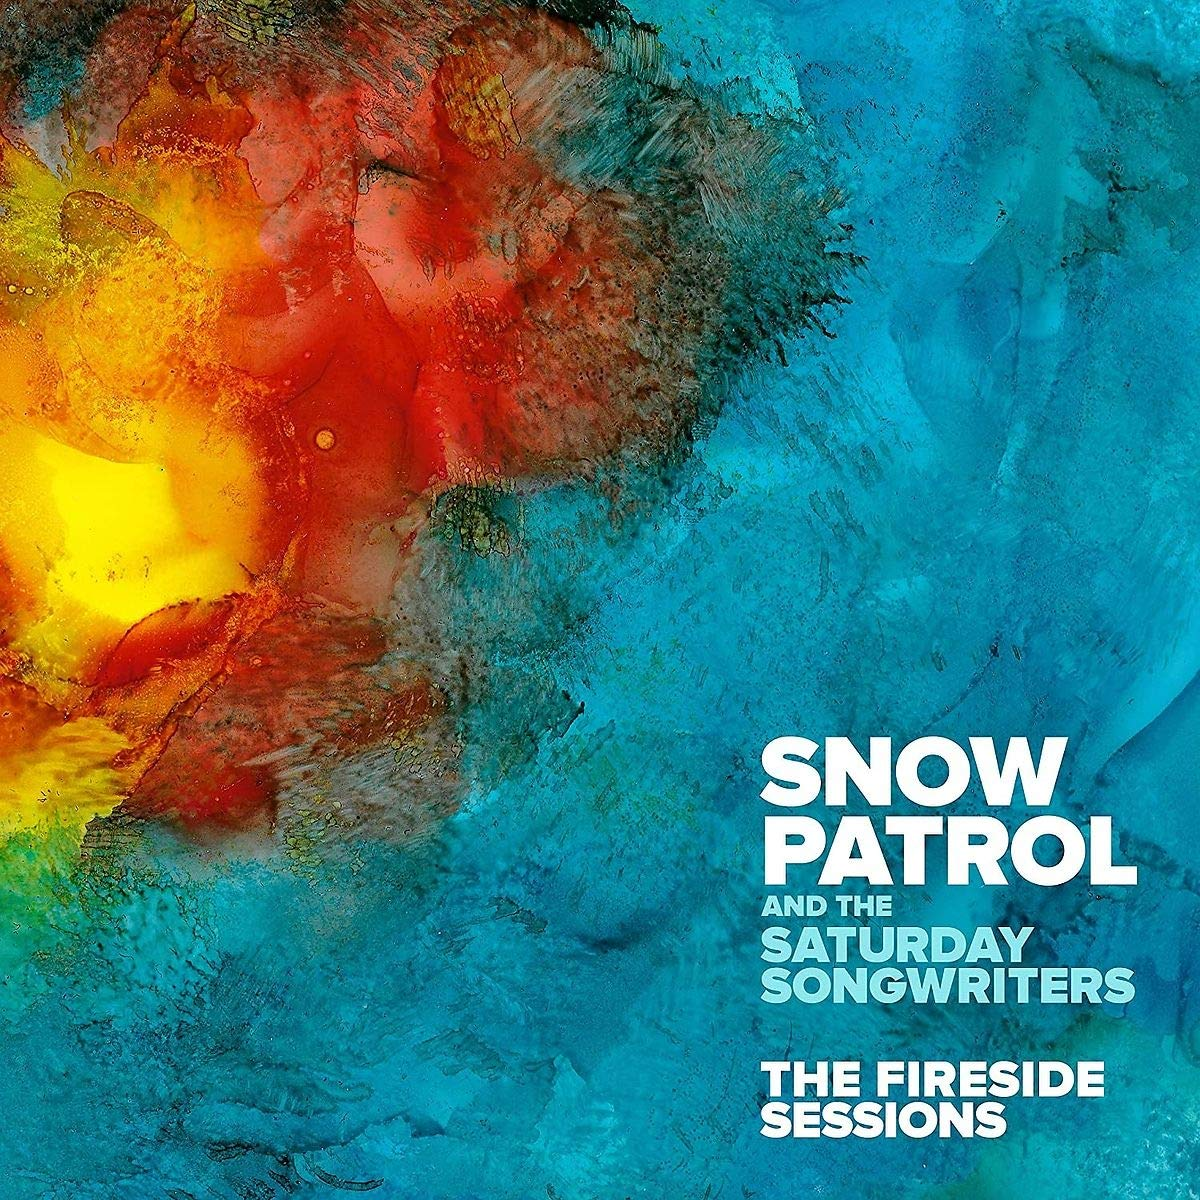 Snow Patrol, The Saturday Songwriters - The Fireside Sessions (2020) [FLAC] Download